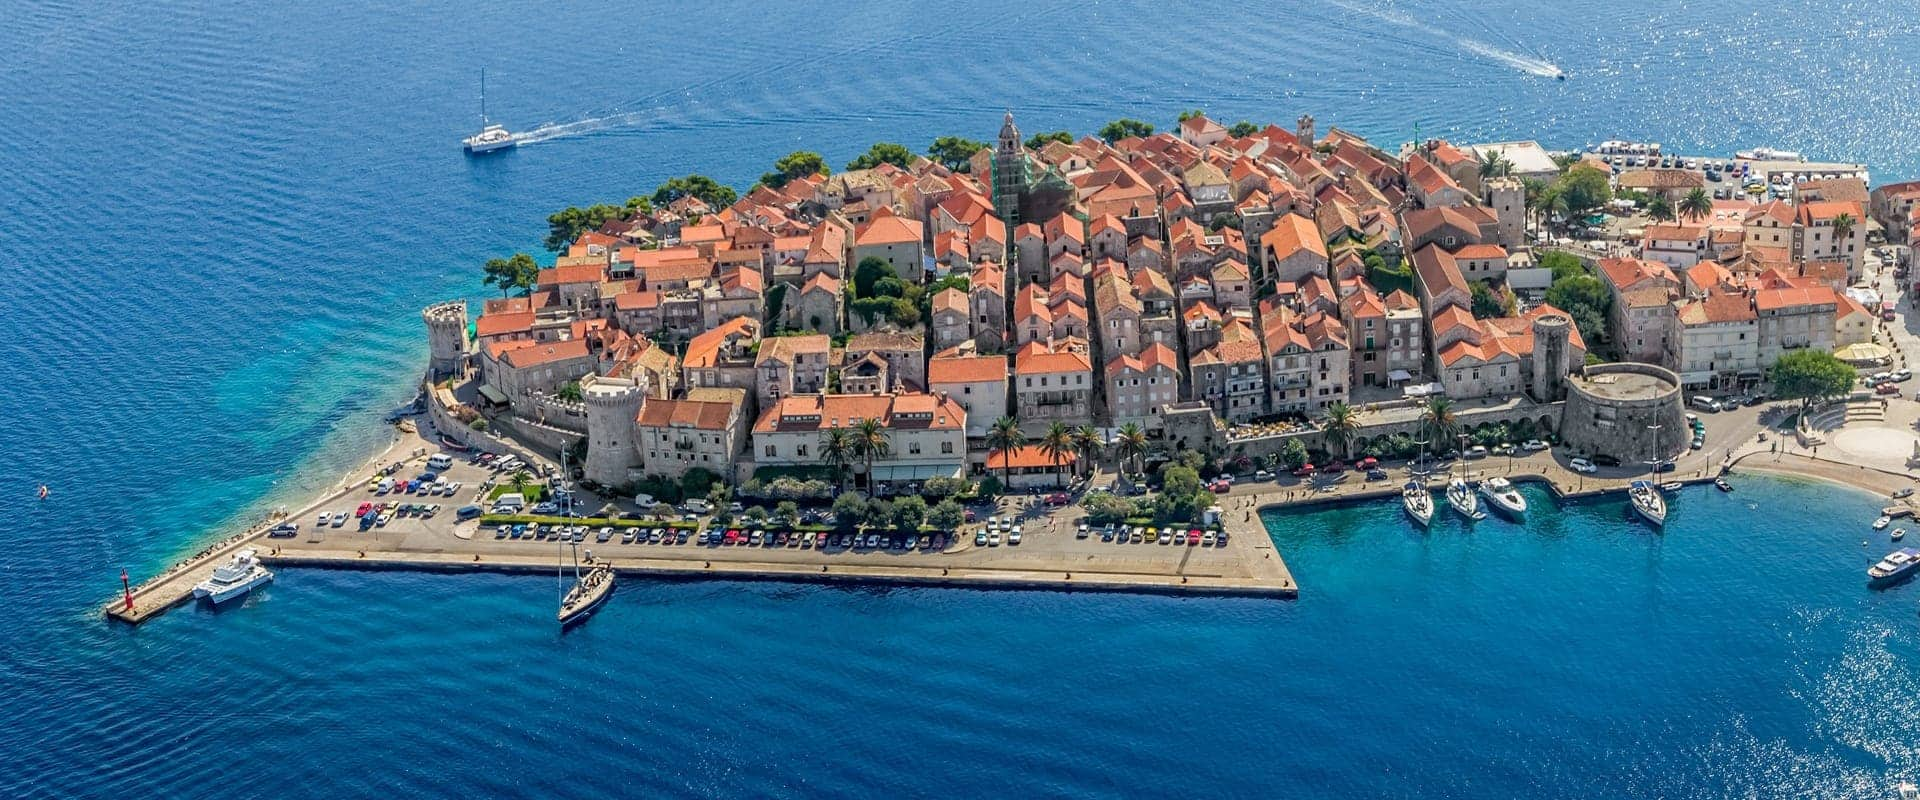 Korcula Adventure Cruises